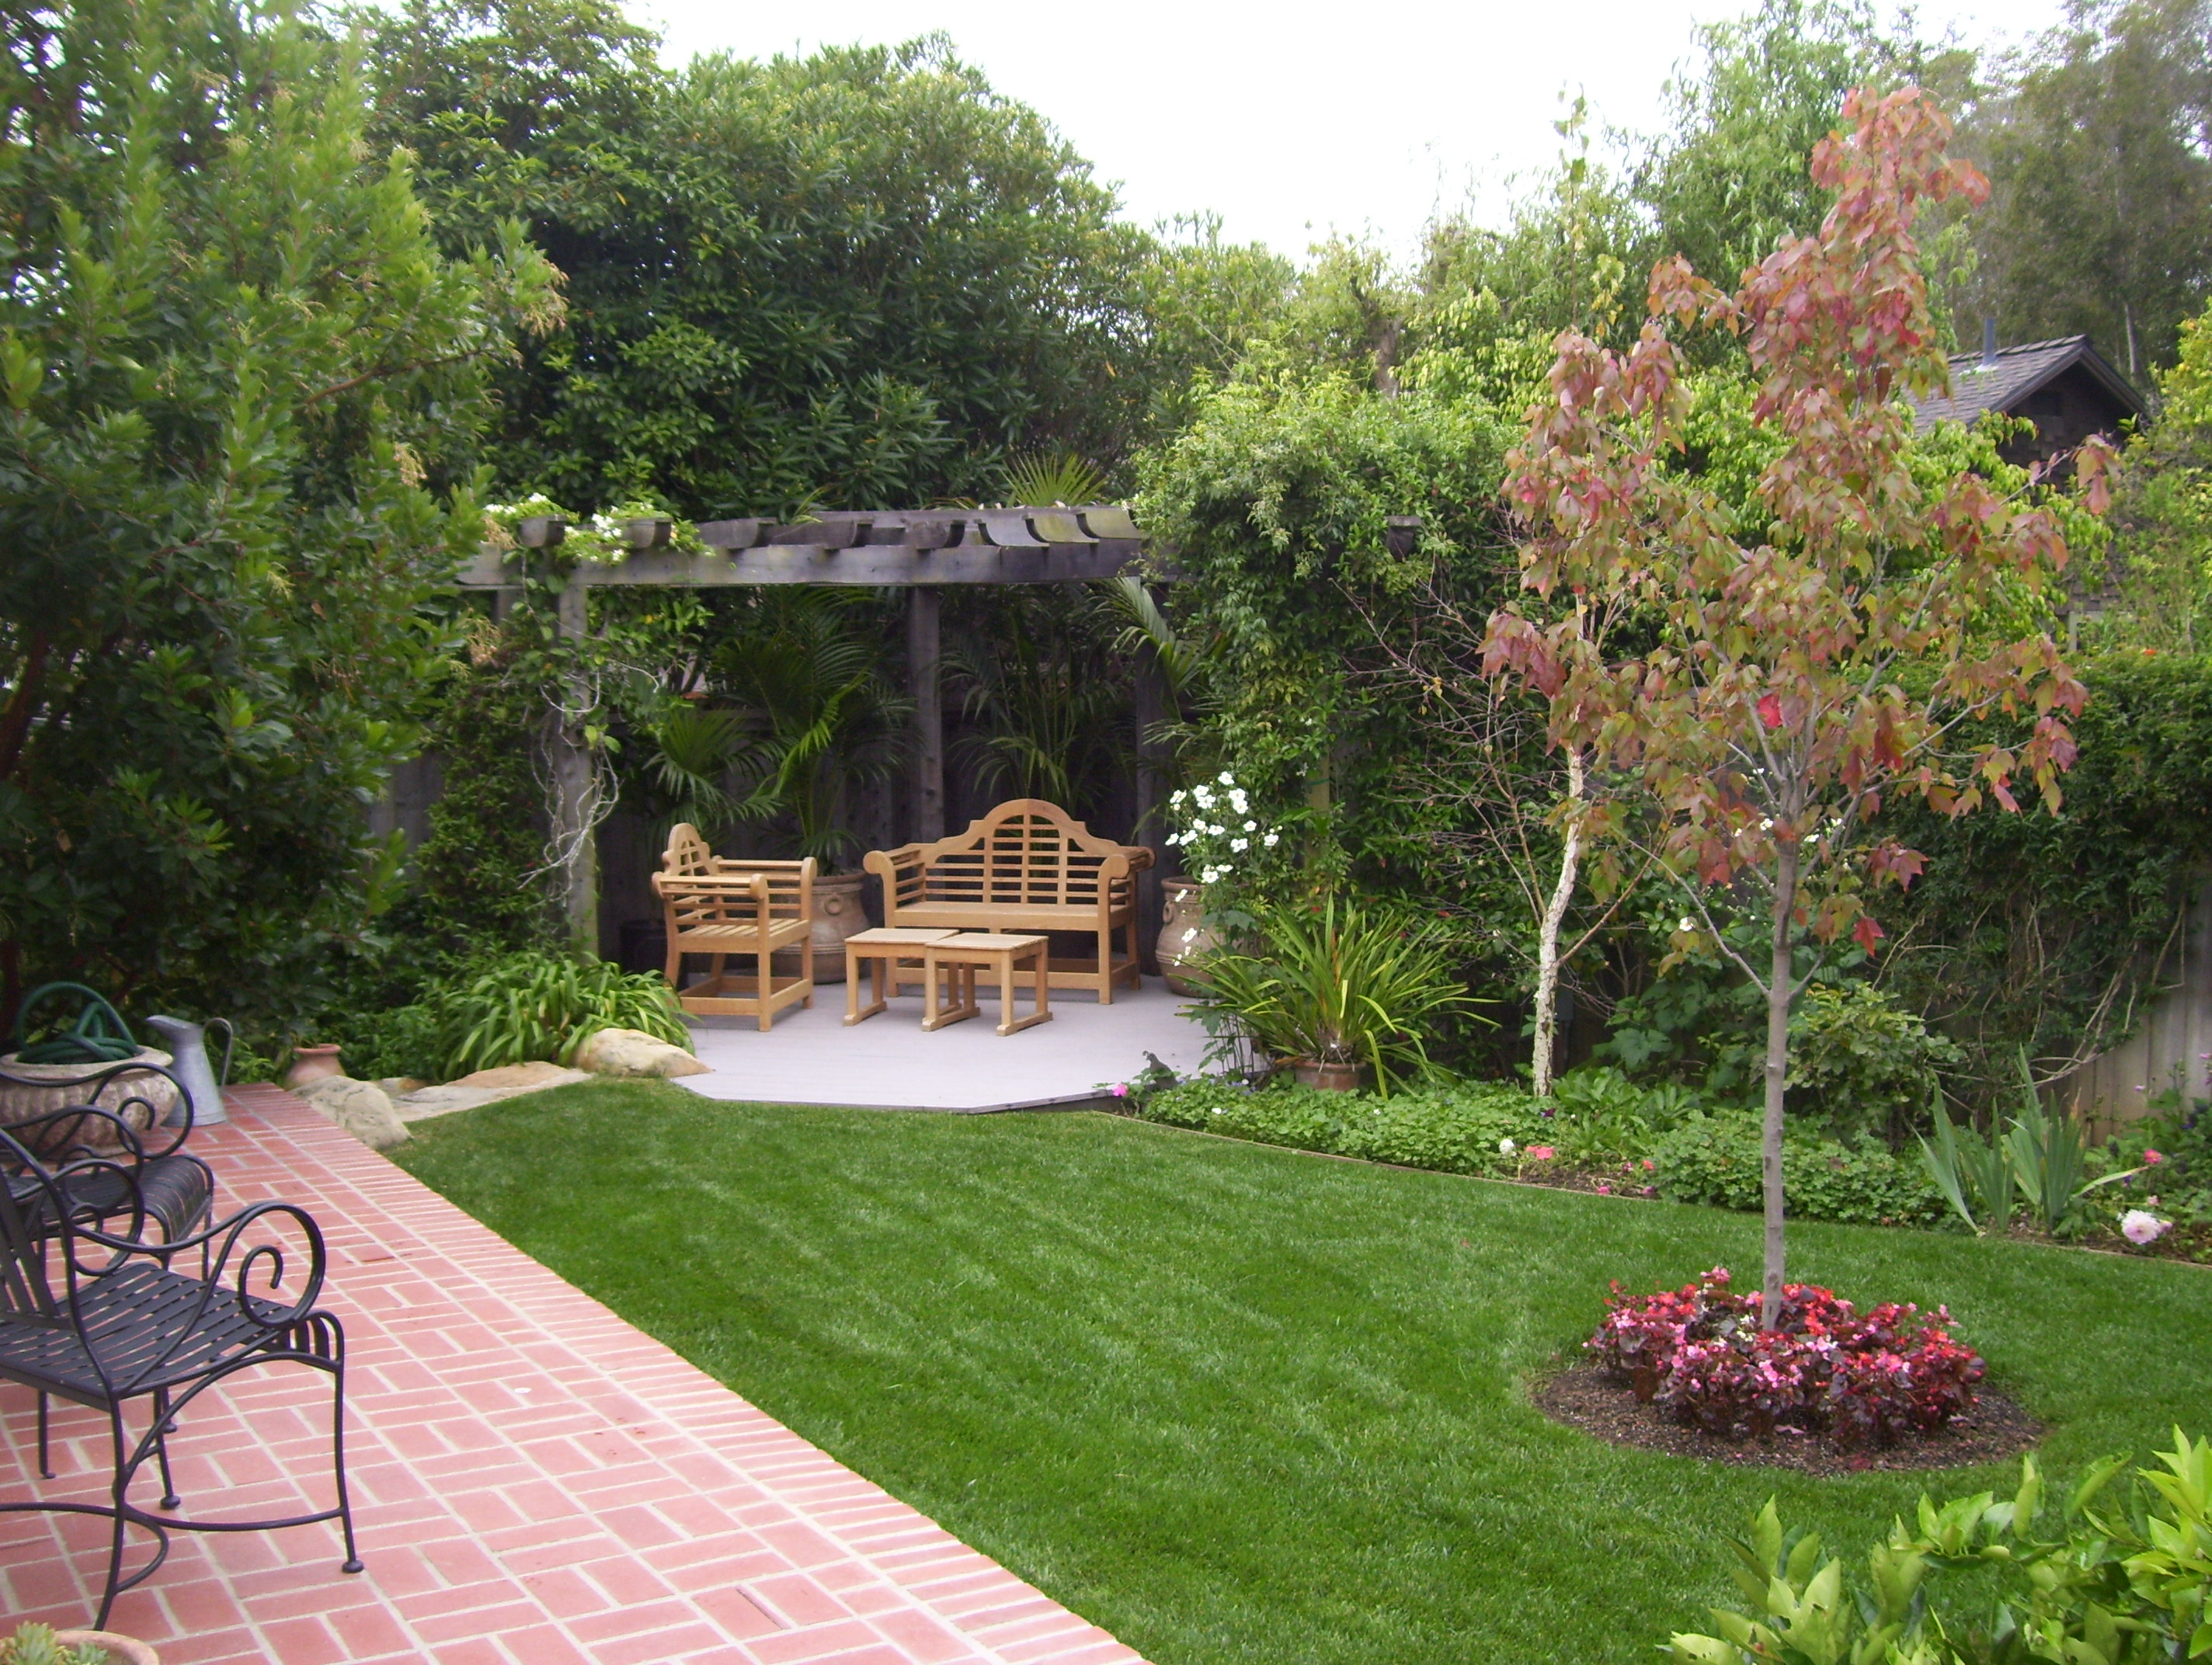 Backyard landscaping ideas santa barbara down to earth for Yard landscape design